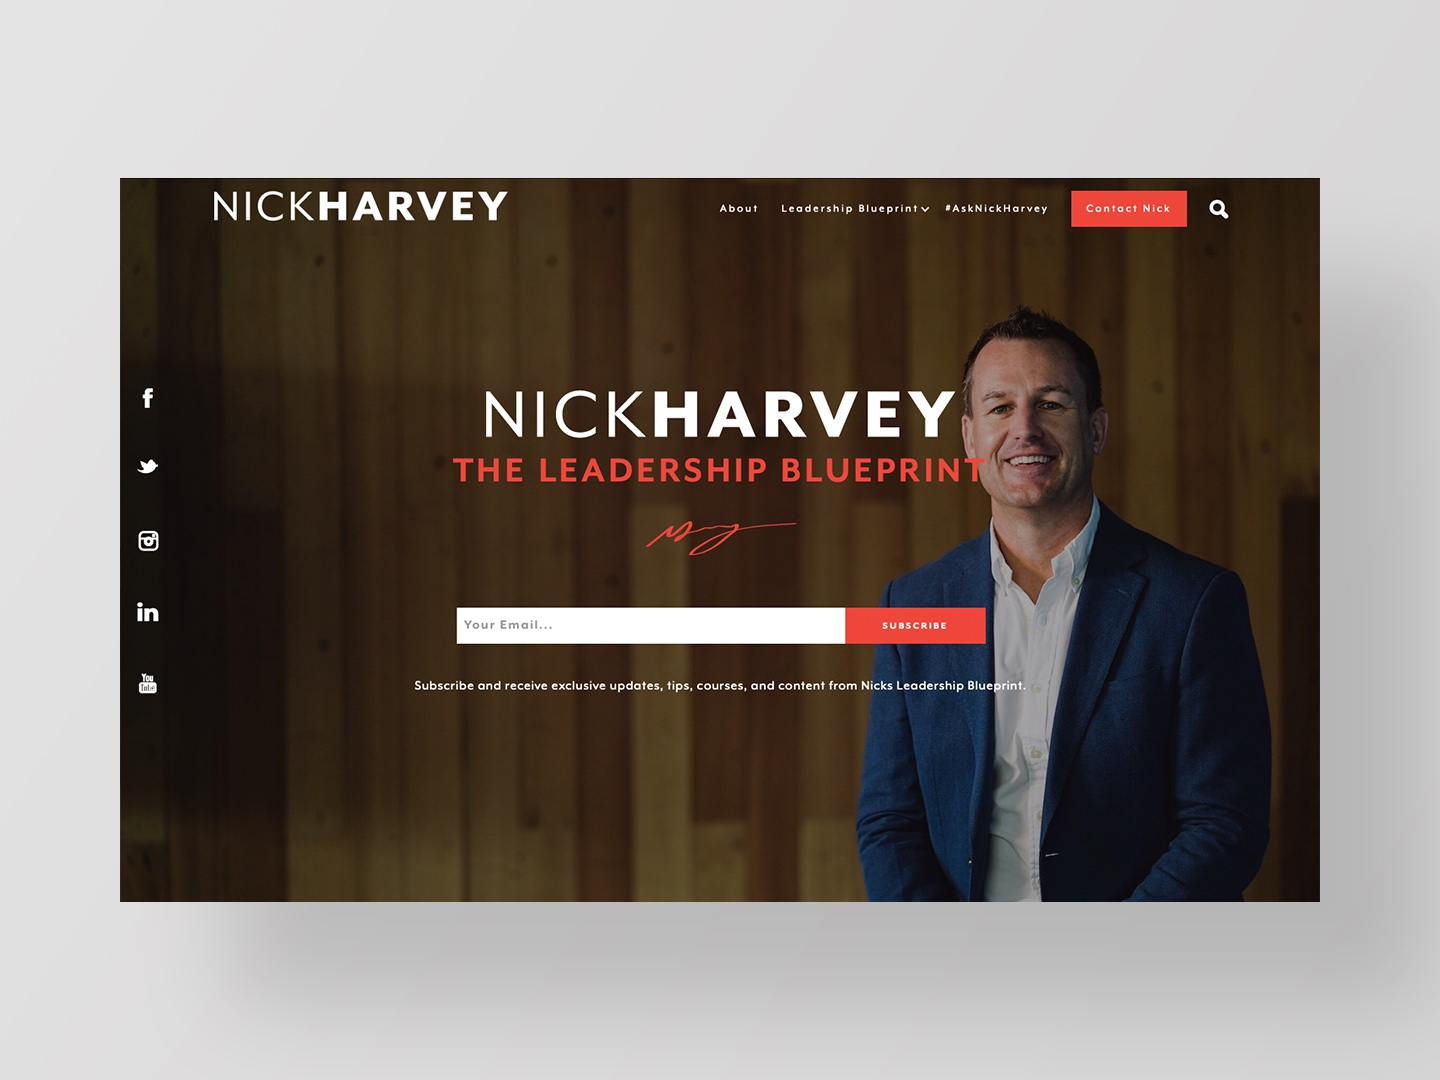 Nick Harvey's new website designed and developed by Neon Hive